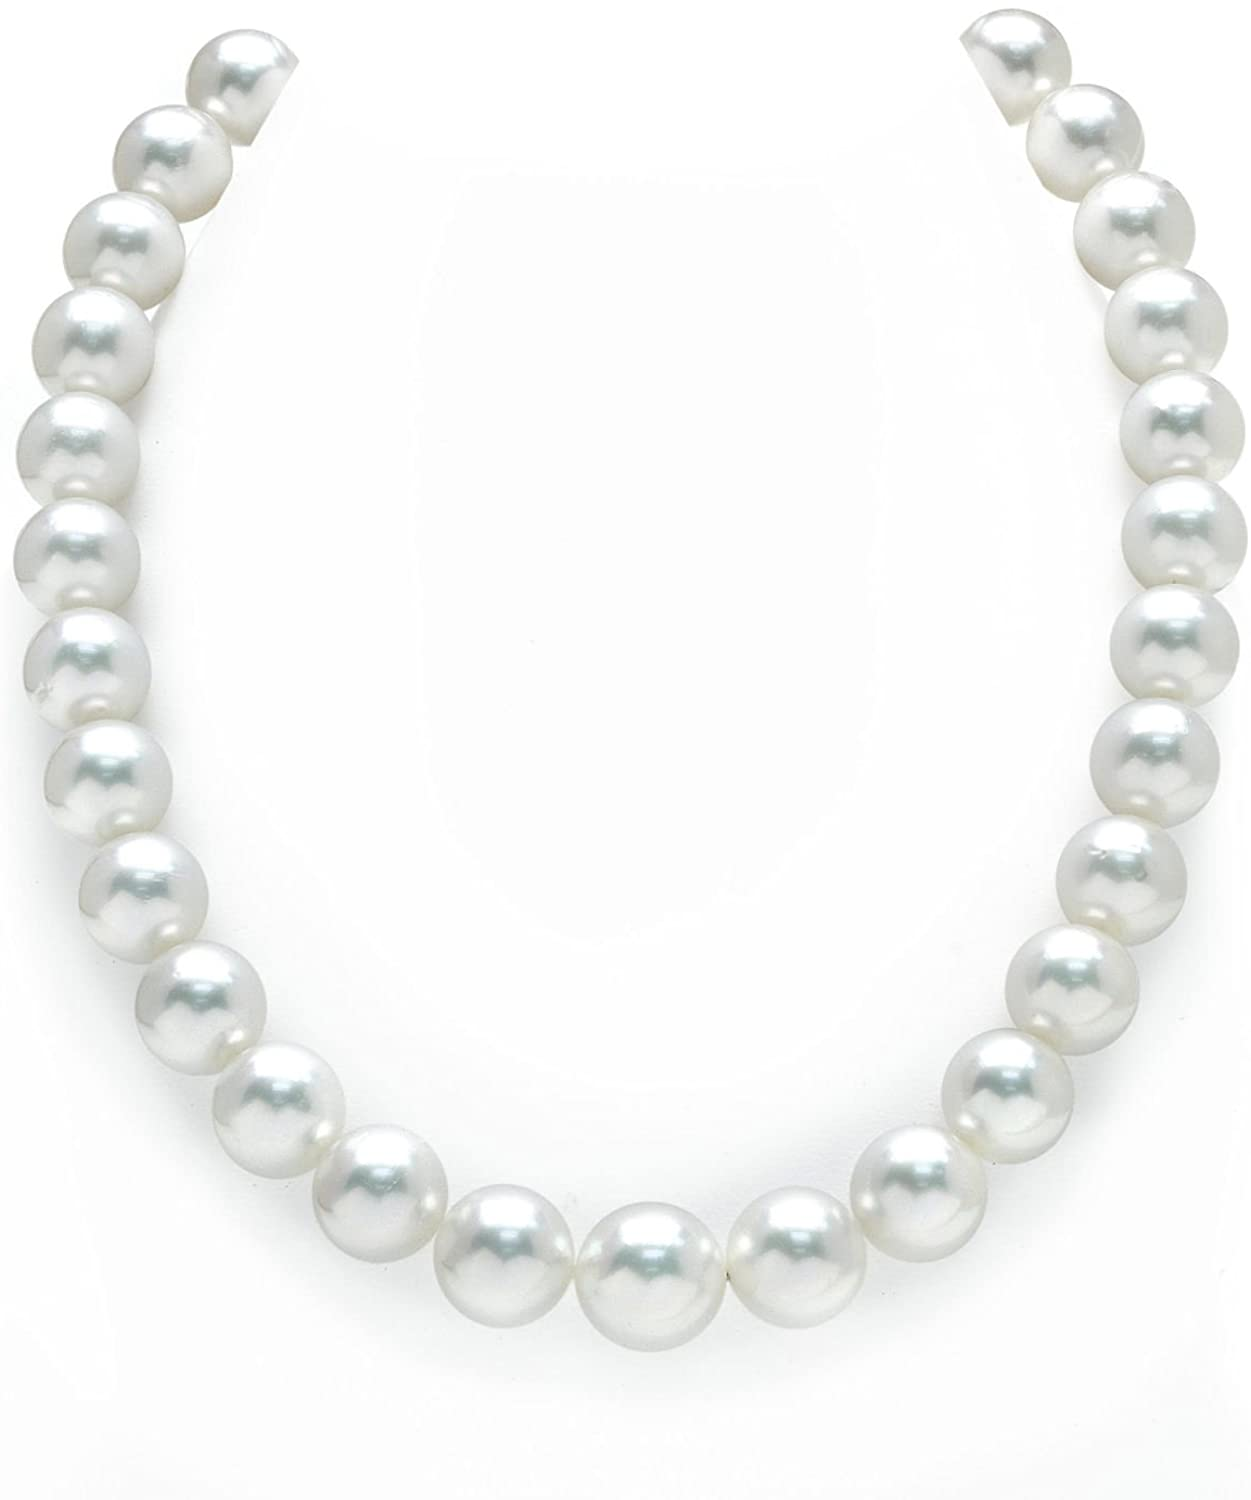 THE PEARL SOURCE 14K Gold 12-14mm Round Genuine White South Sea Cultured Pearl Necklace in 17